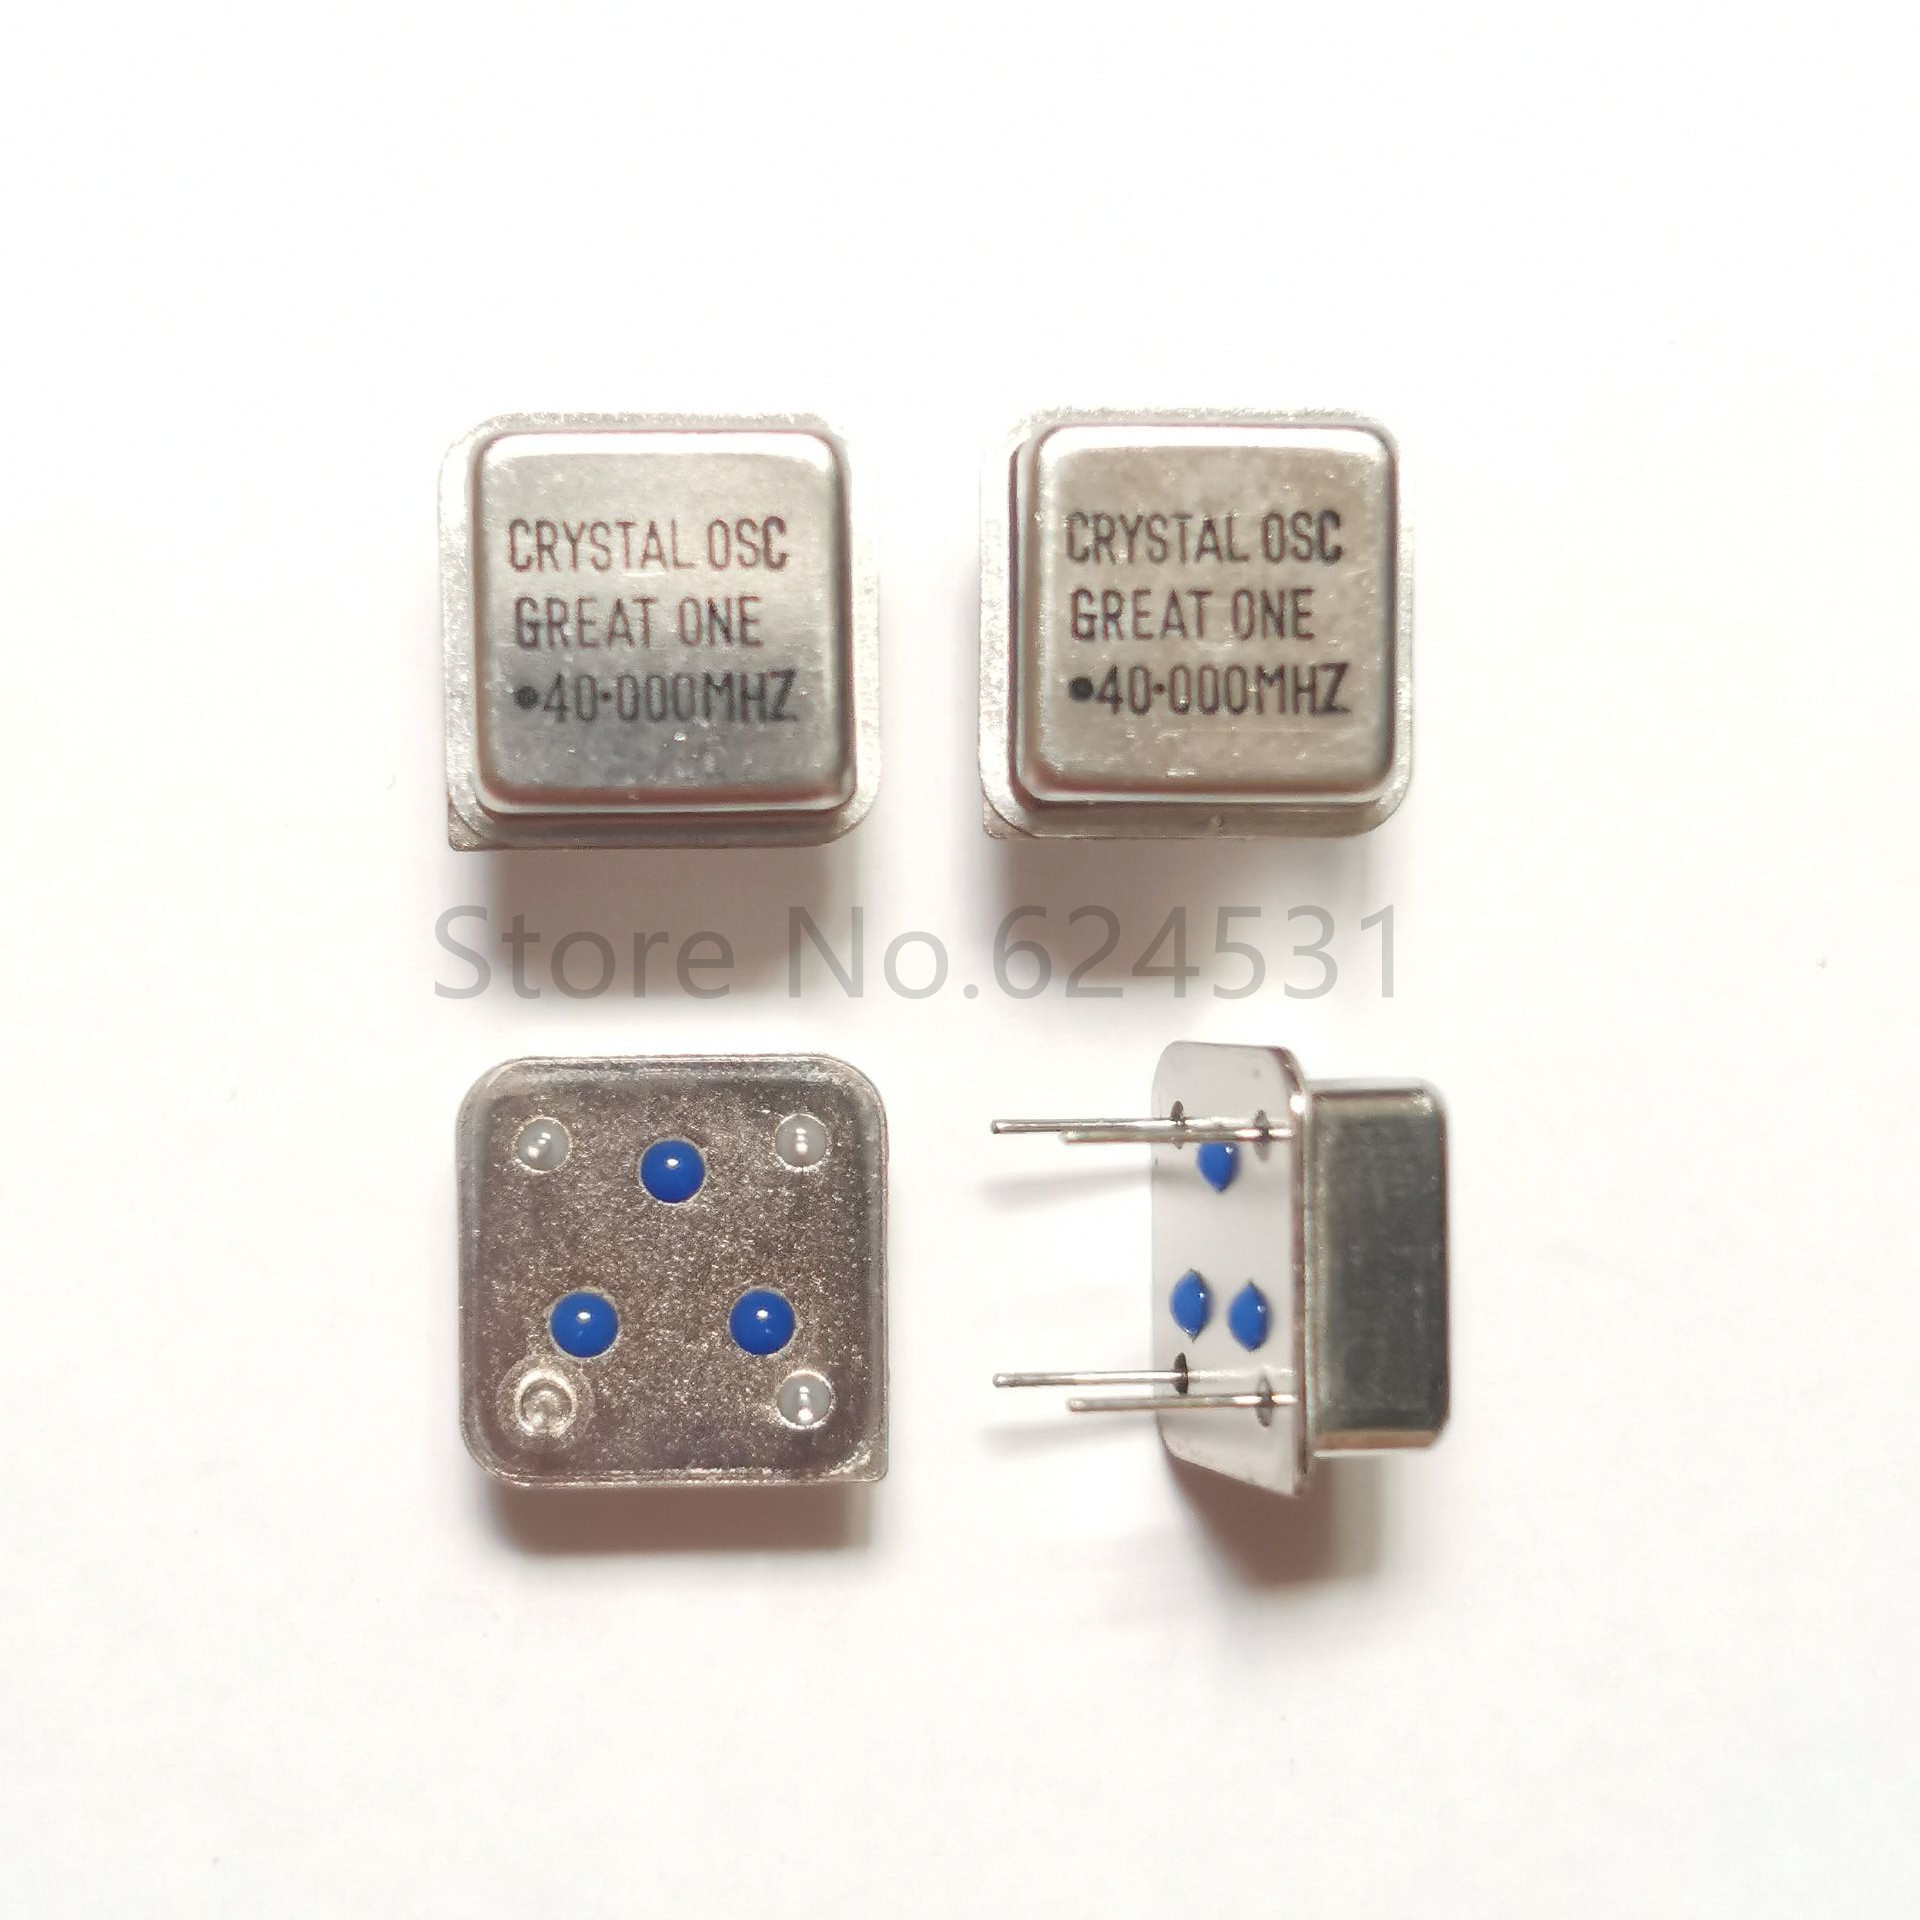 10pcs In-line Active Crystal Oscillator Clock Square Half Size DIP-4 OSC 40M 40.000MHZ